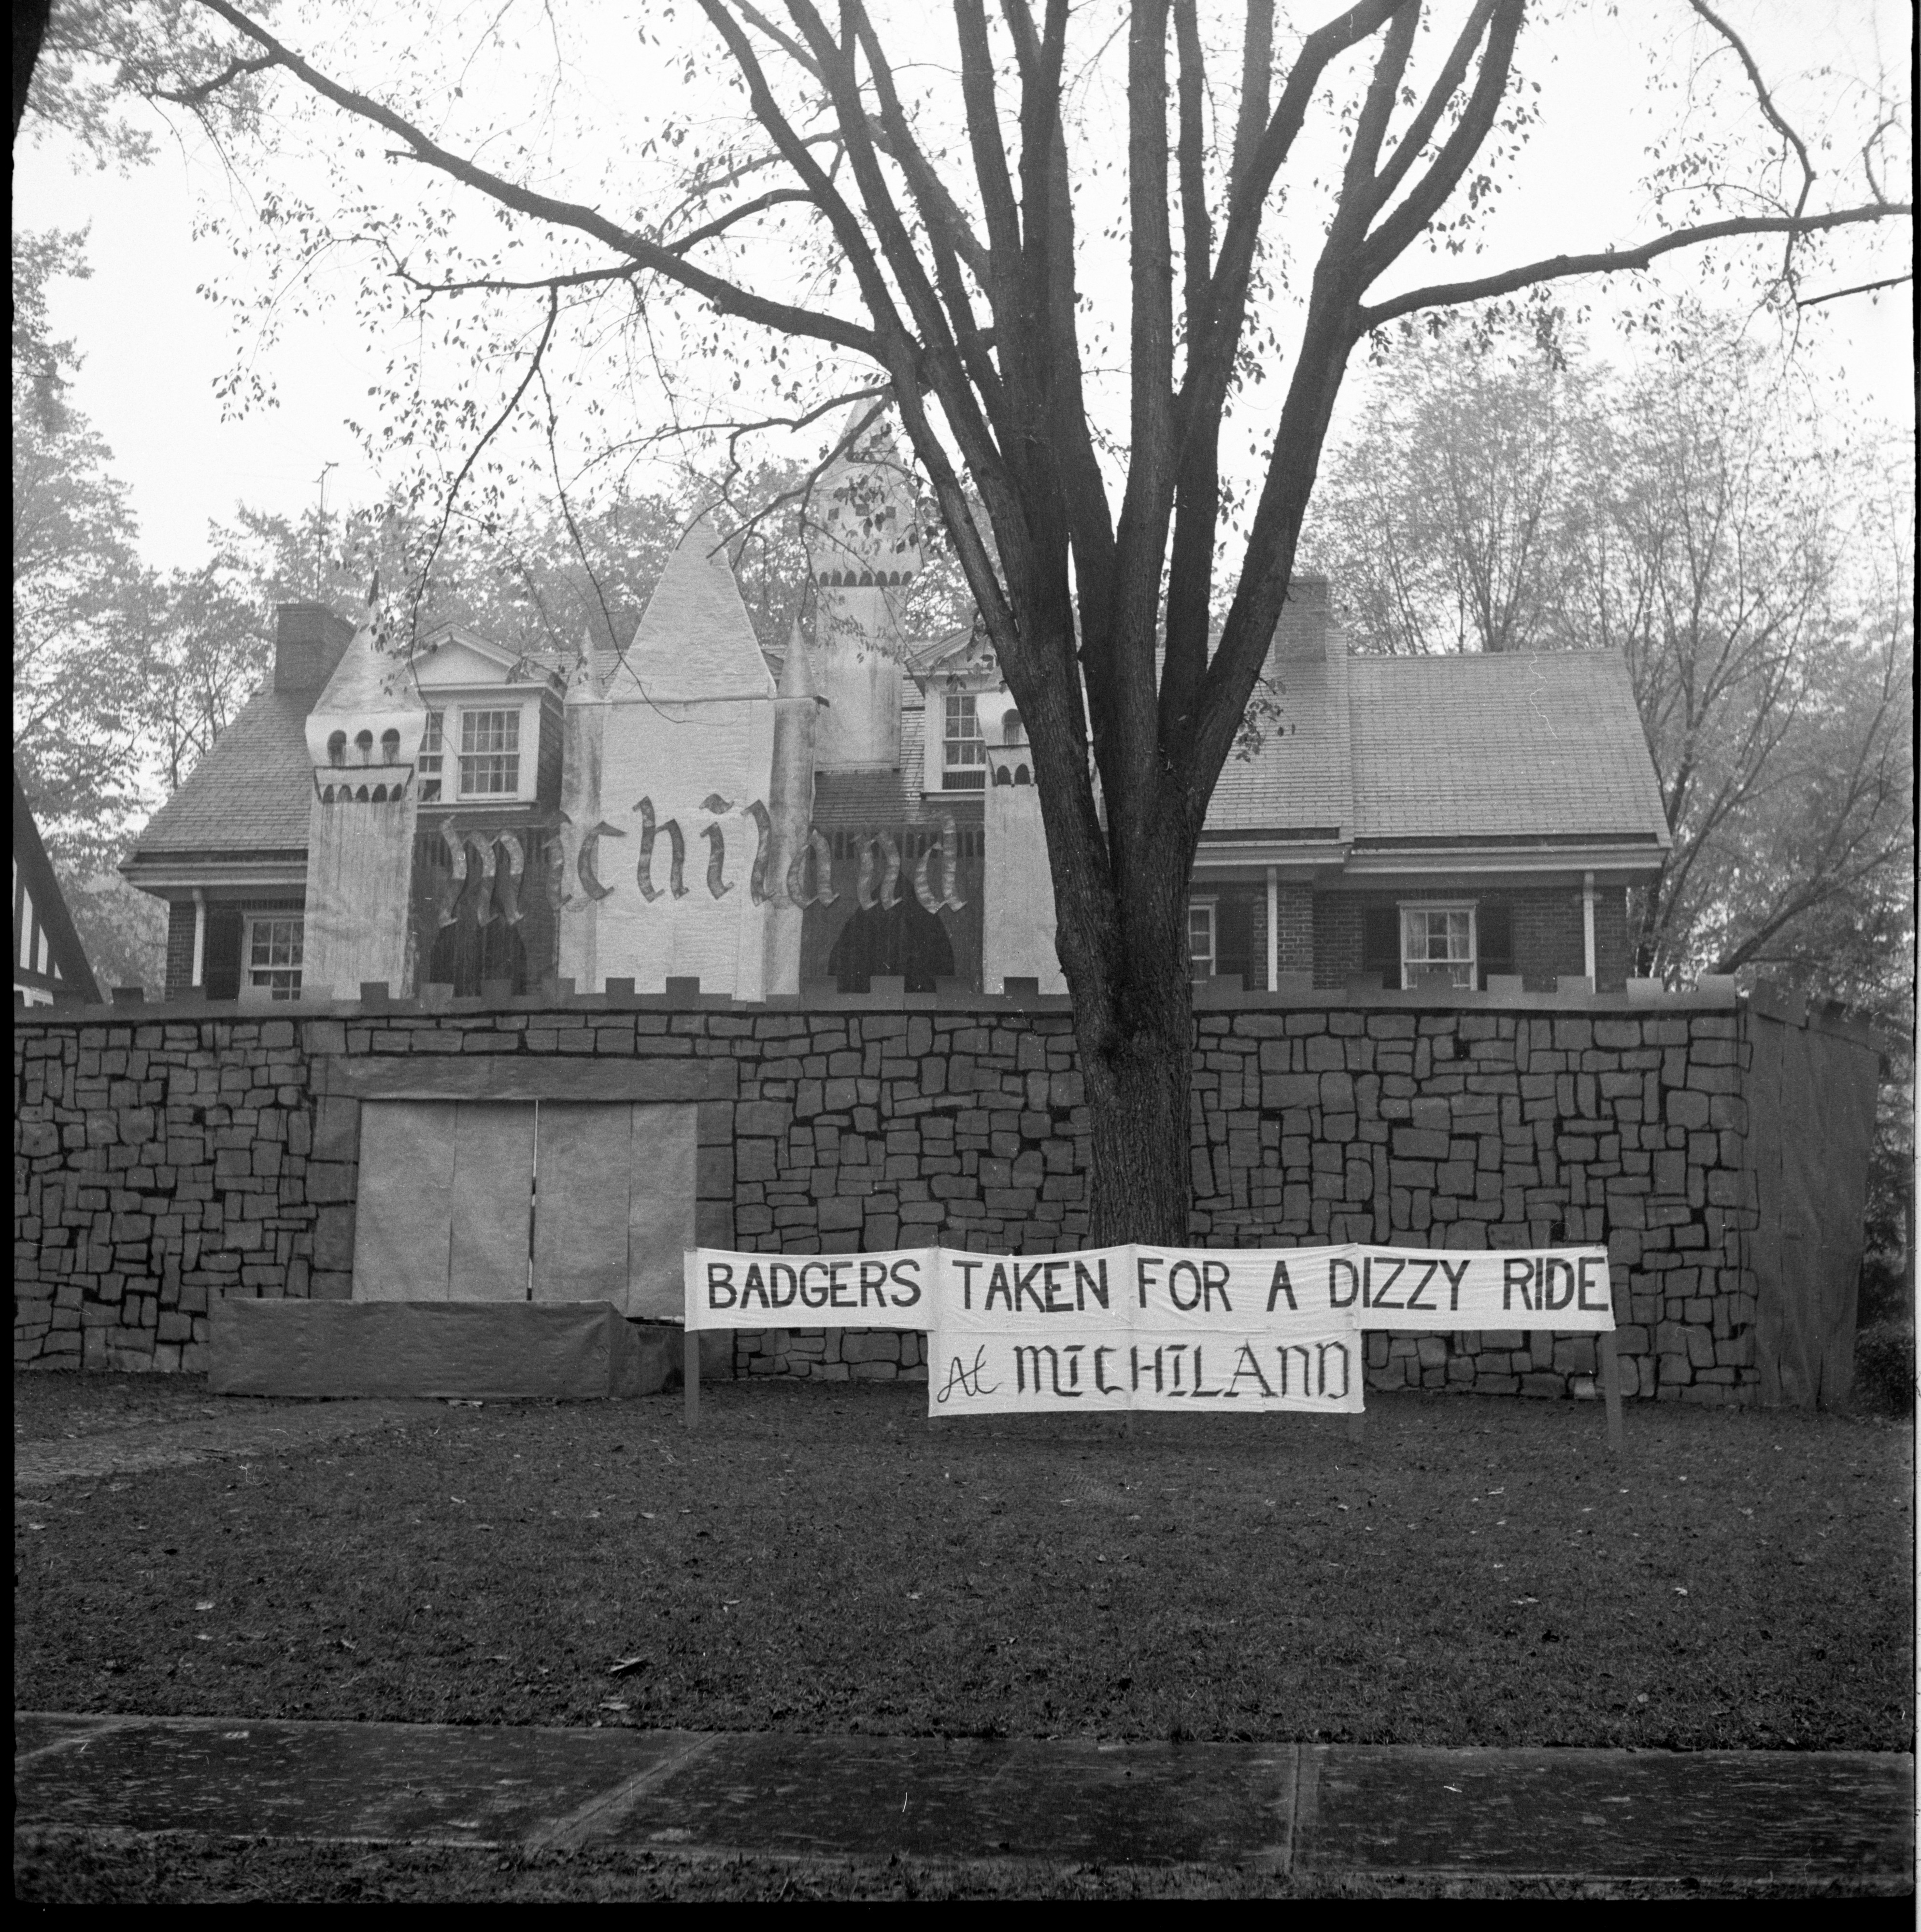 """Michiland"" - Alpha Sigma Phi Homecoming Display, October 1959 image"